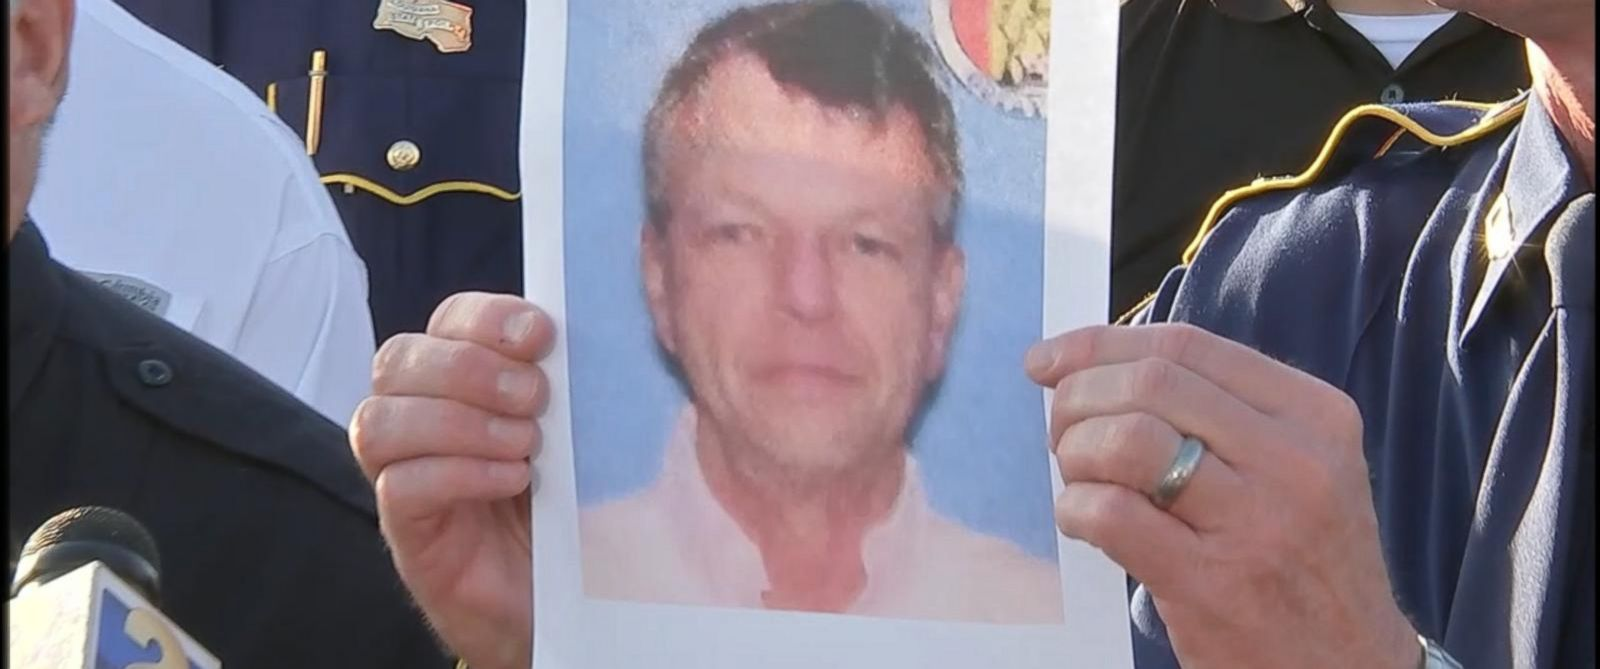 PHOTO: A photo of John Houser, who shot several people in a Lafayette movie theater on July 23, 2015, is shown during a press conference, July 24, 2015.